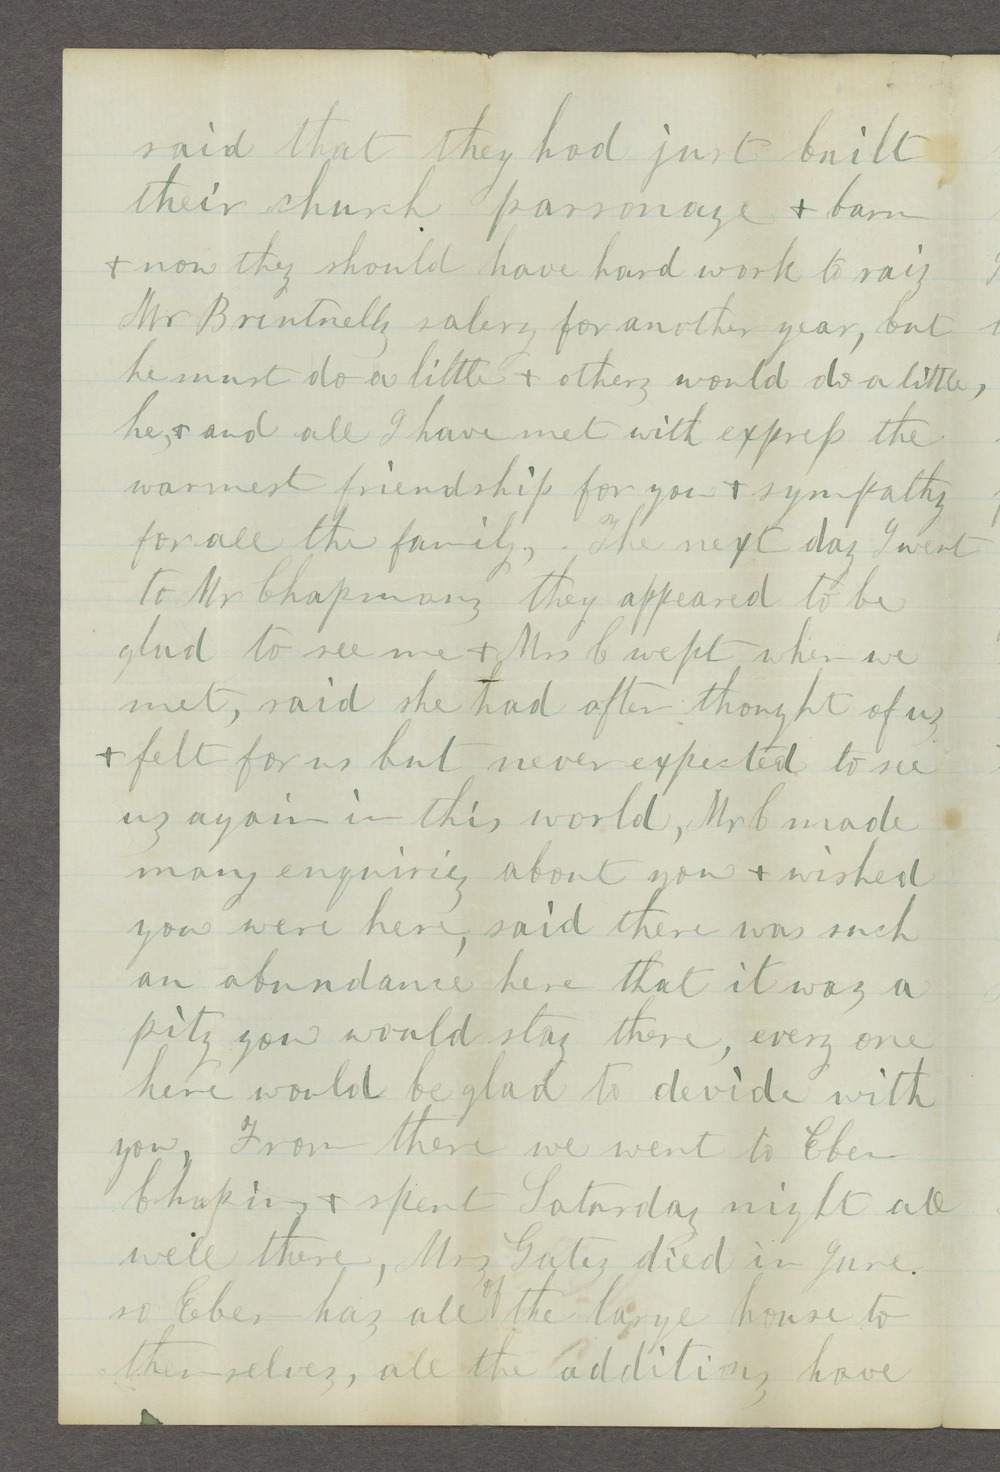 Correspondence between Samuel Lyle Adair, Florella Brown Adair, and their children - 10